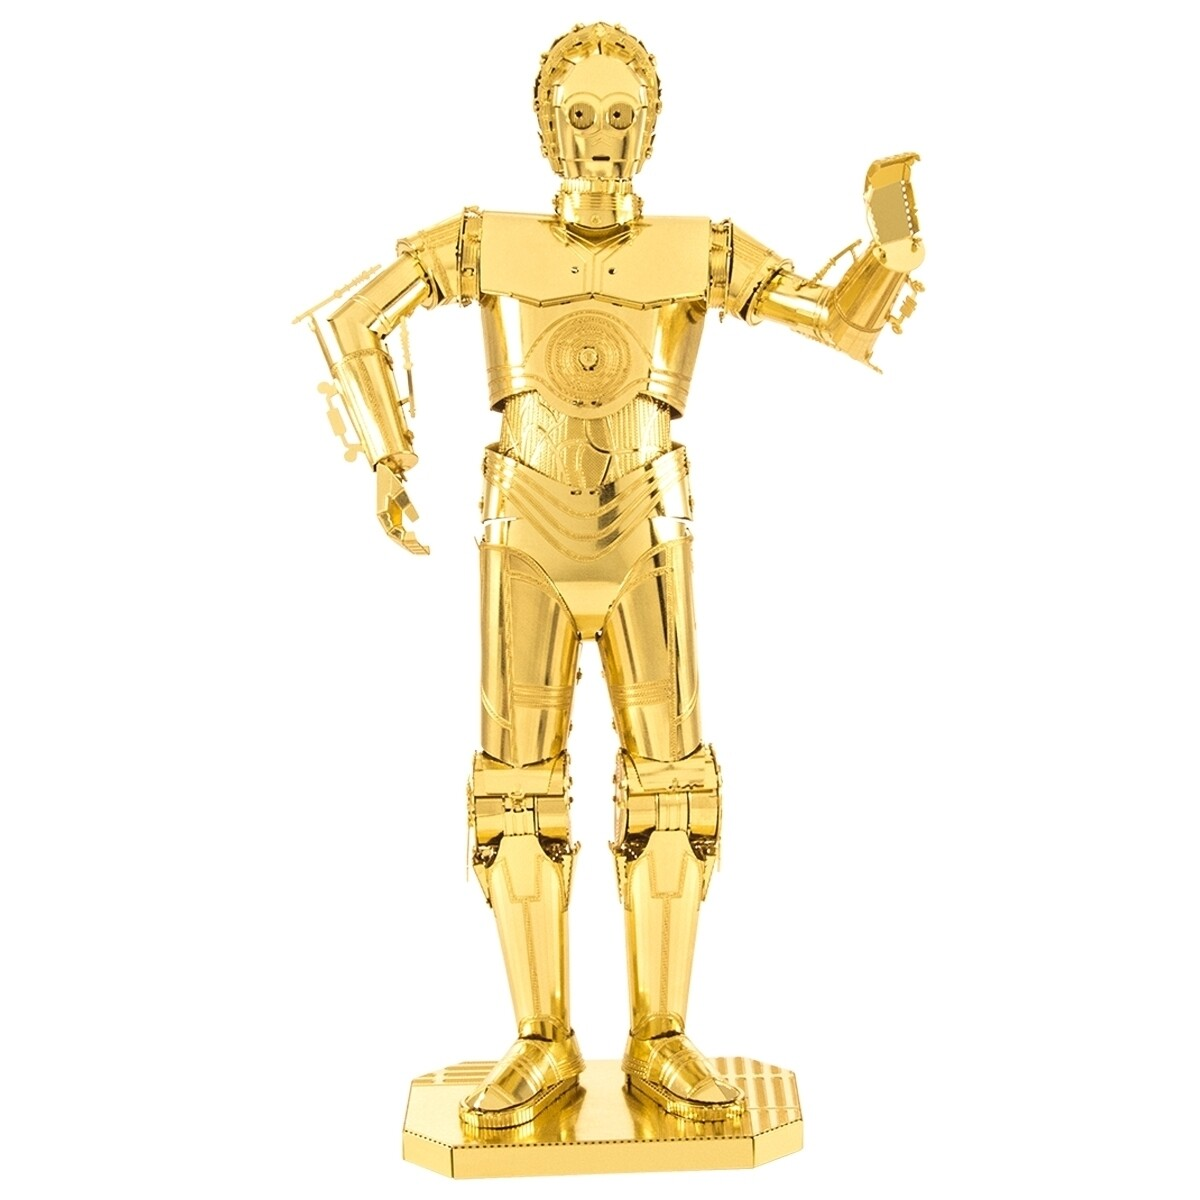 METAL EARTH C-3PO GOLD STAR WARS